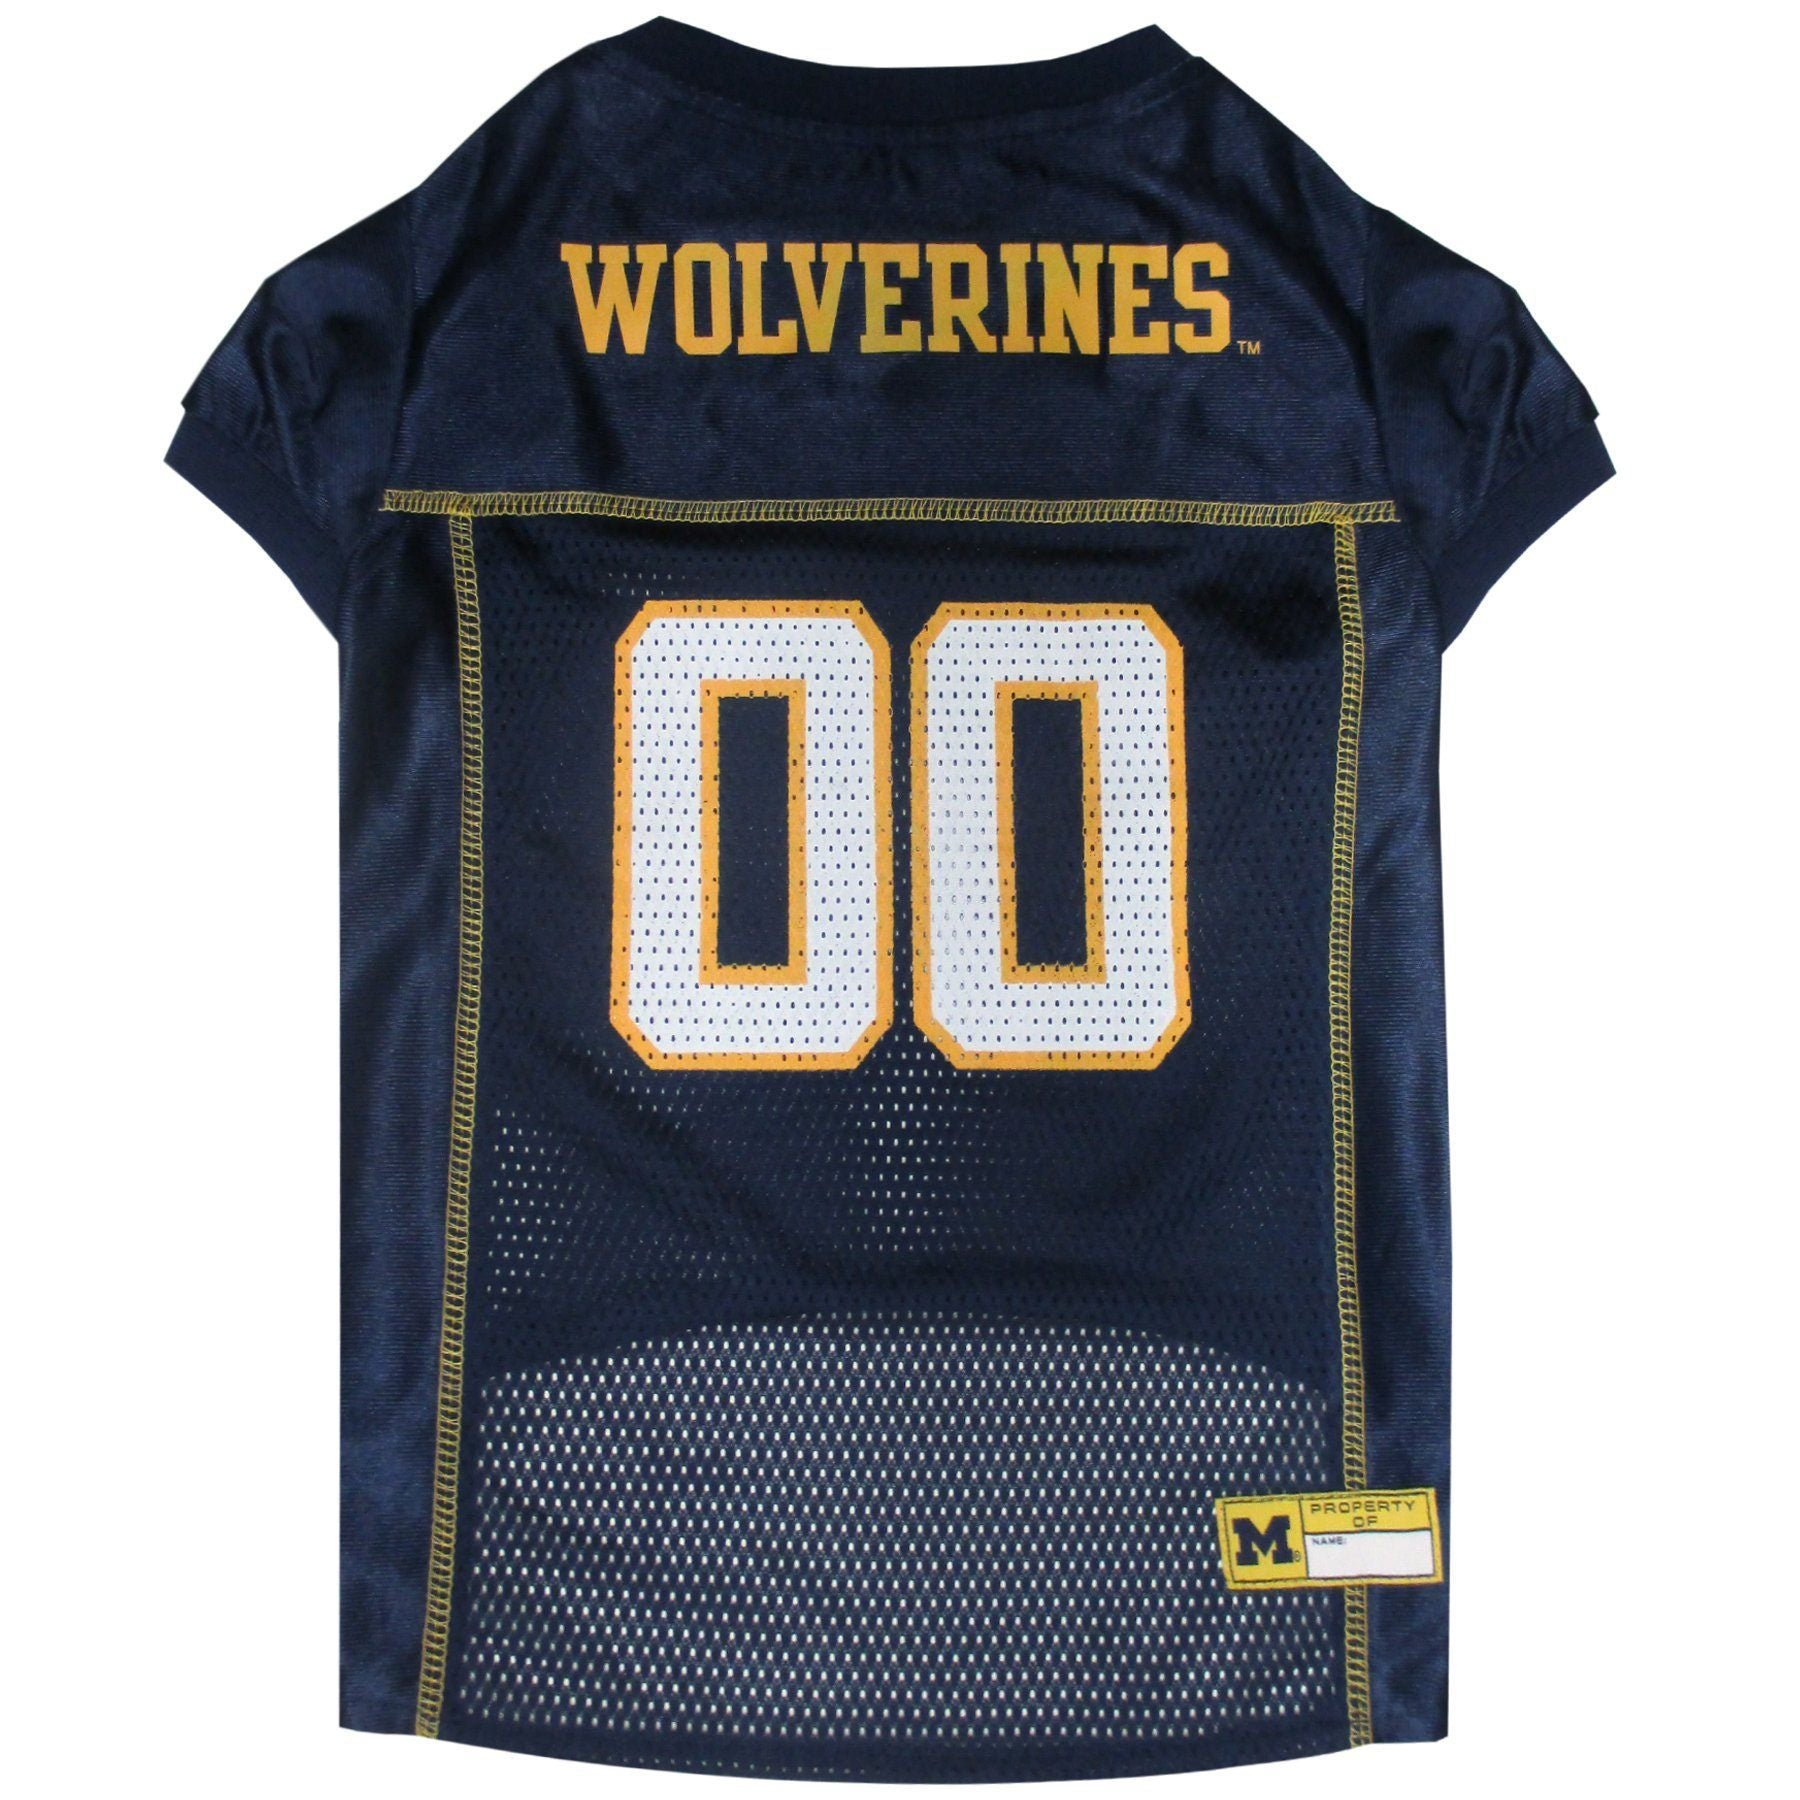 Michigan Wolverines Football Puppy Dog Jersey - Jersey Champs - Custom Basketball, Baseball, Football & Hockey Jerseys